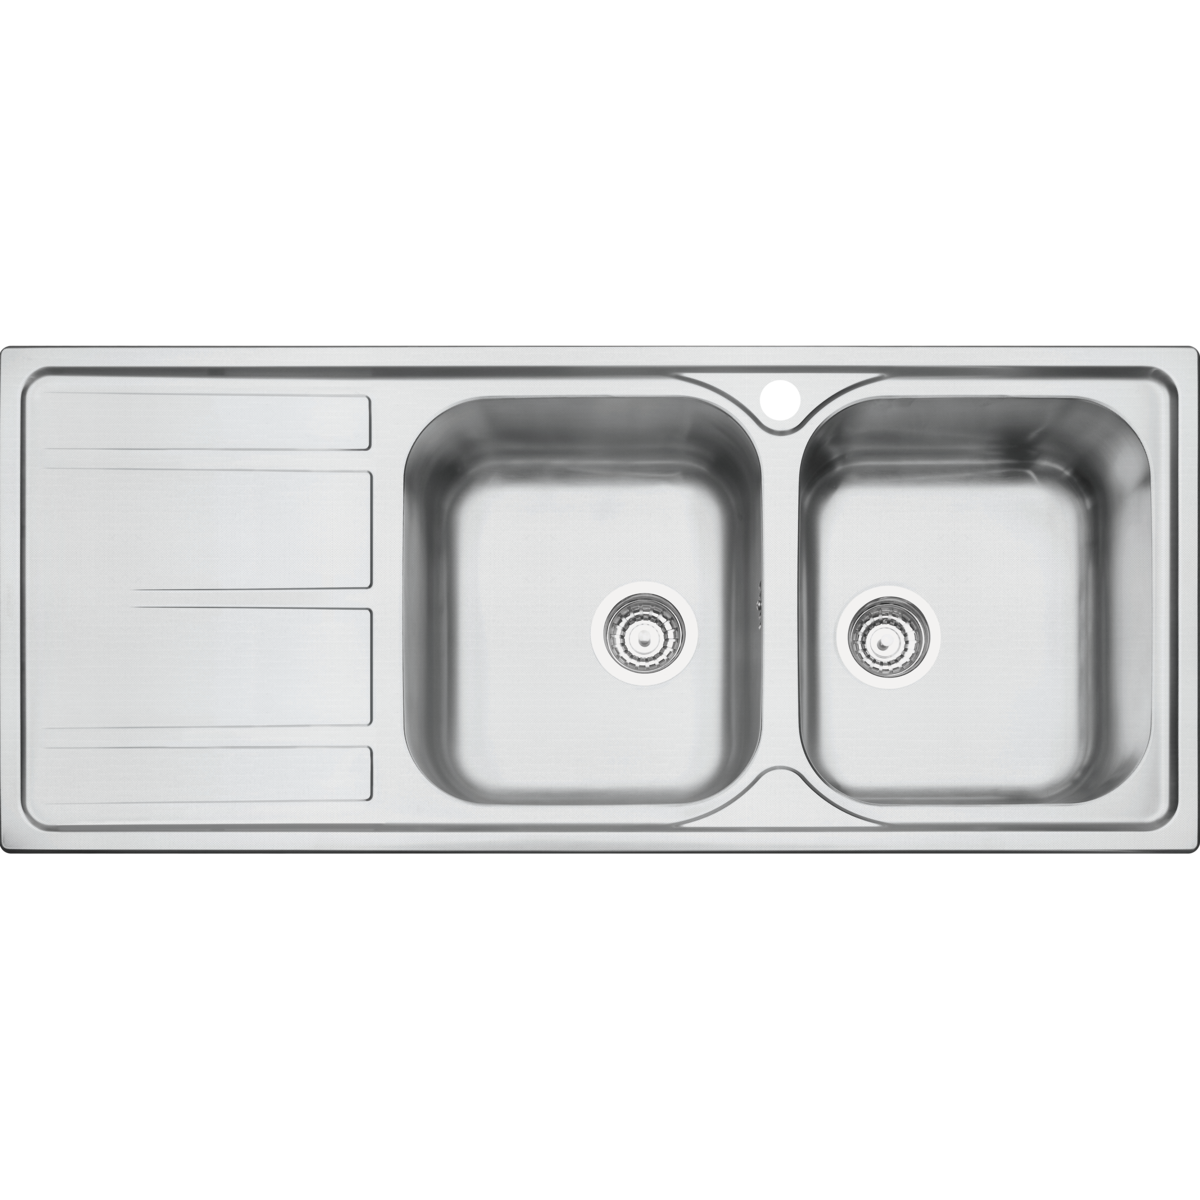 Stainless Steel sink 2 Bowls...